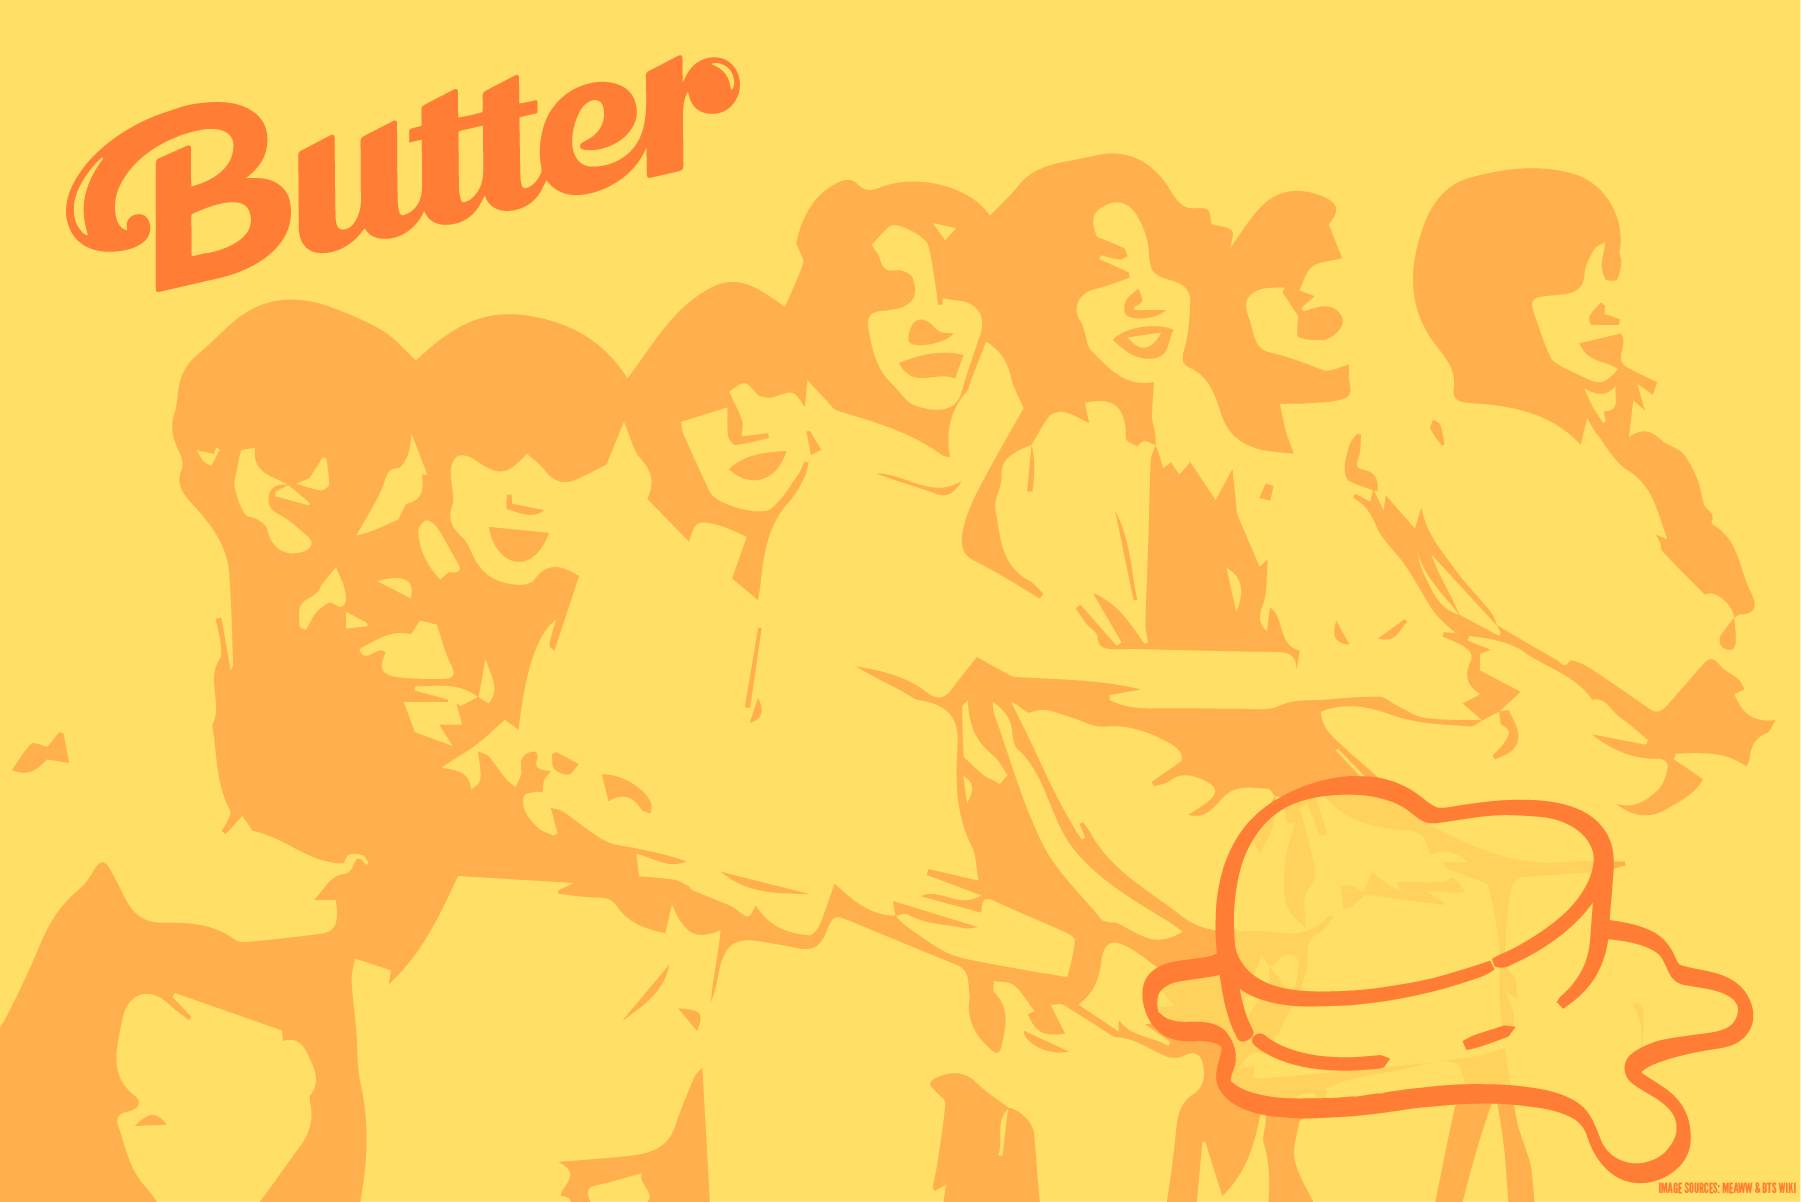 Butter' BTS's legacy may be ruining music charts // The Observer